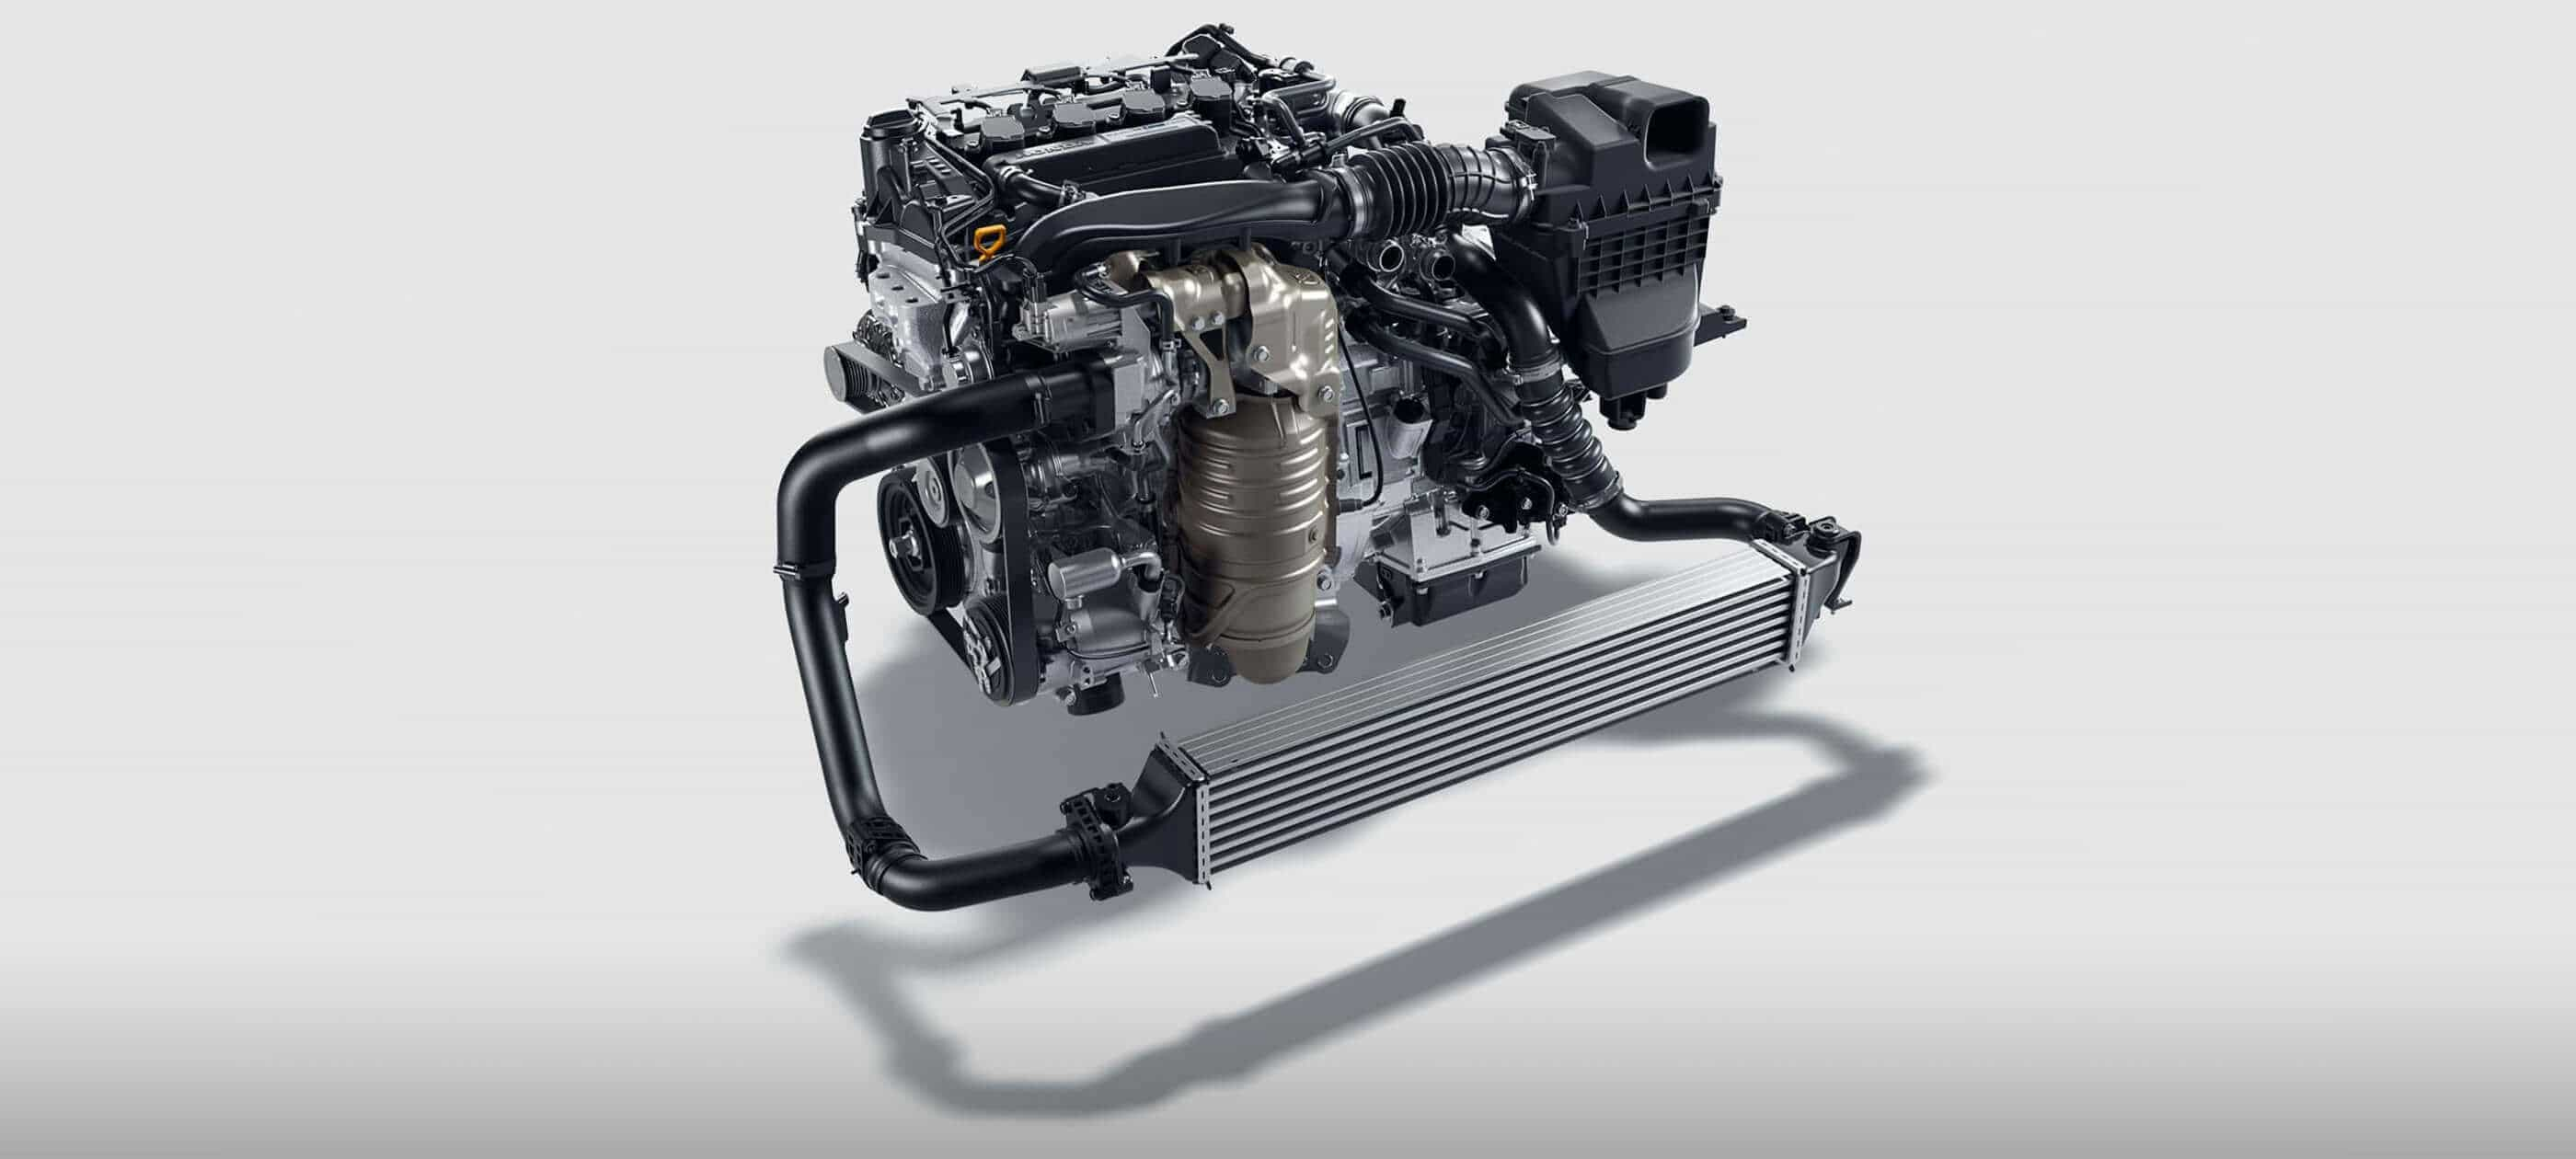 174-hp Turbocharged Engine